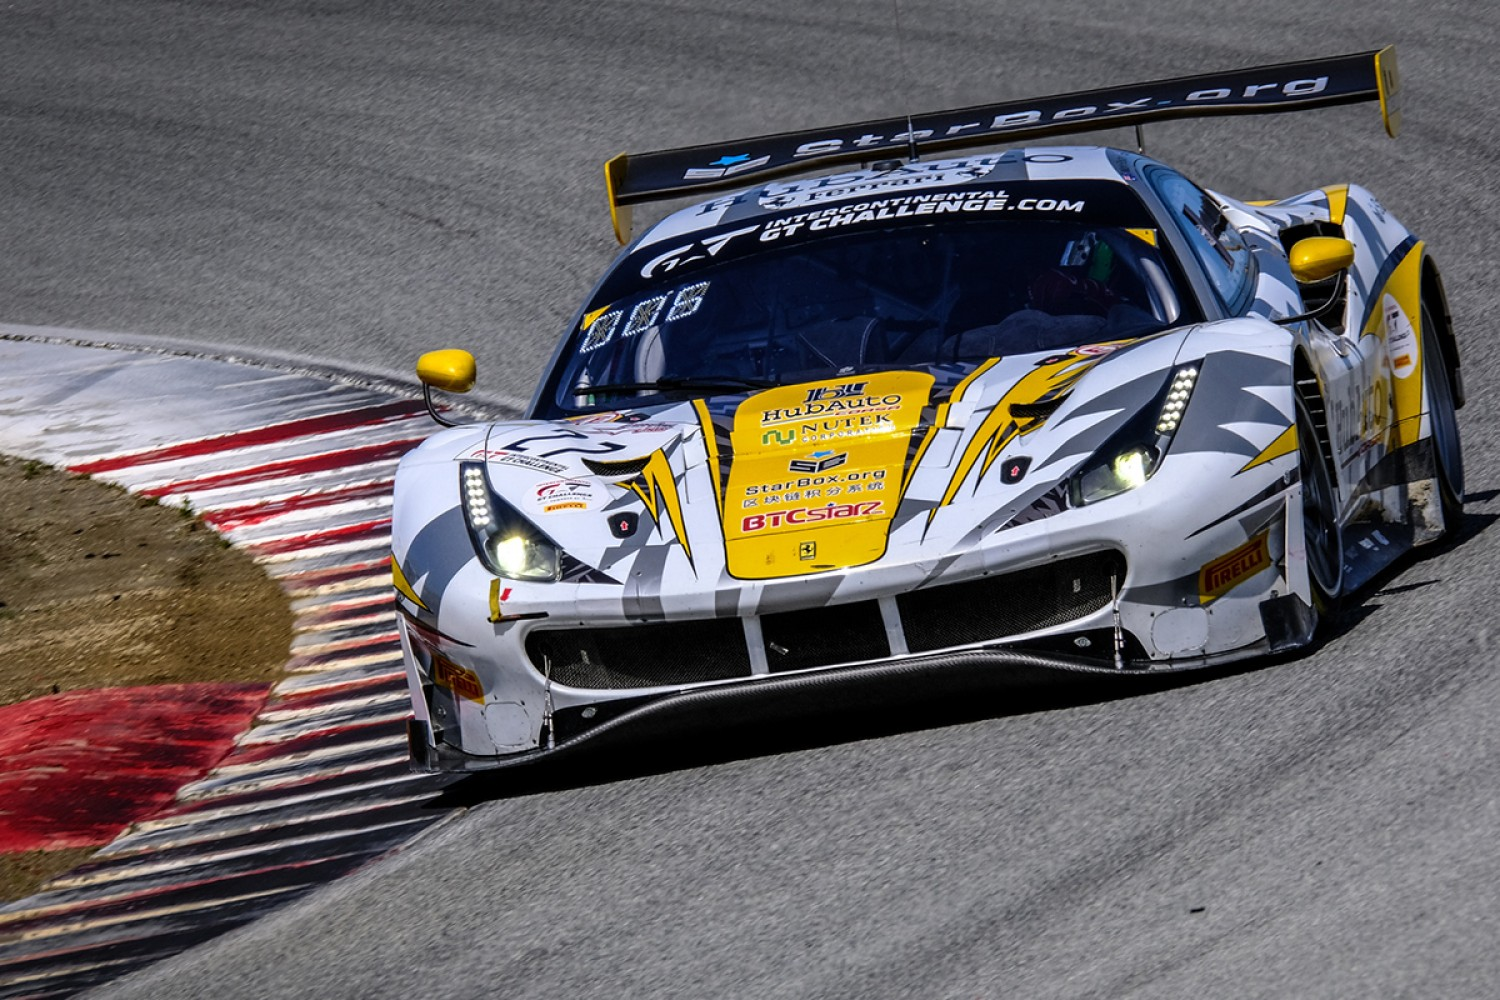 Cassidy and Serra join Foster for HubAuto's Total 24 Hours of Spa assault